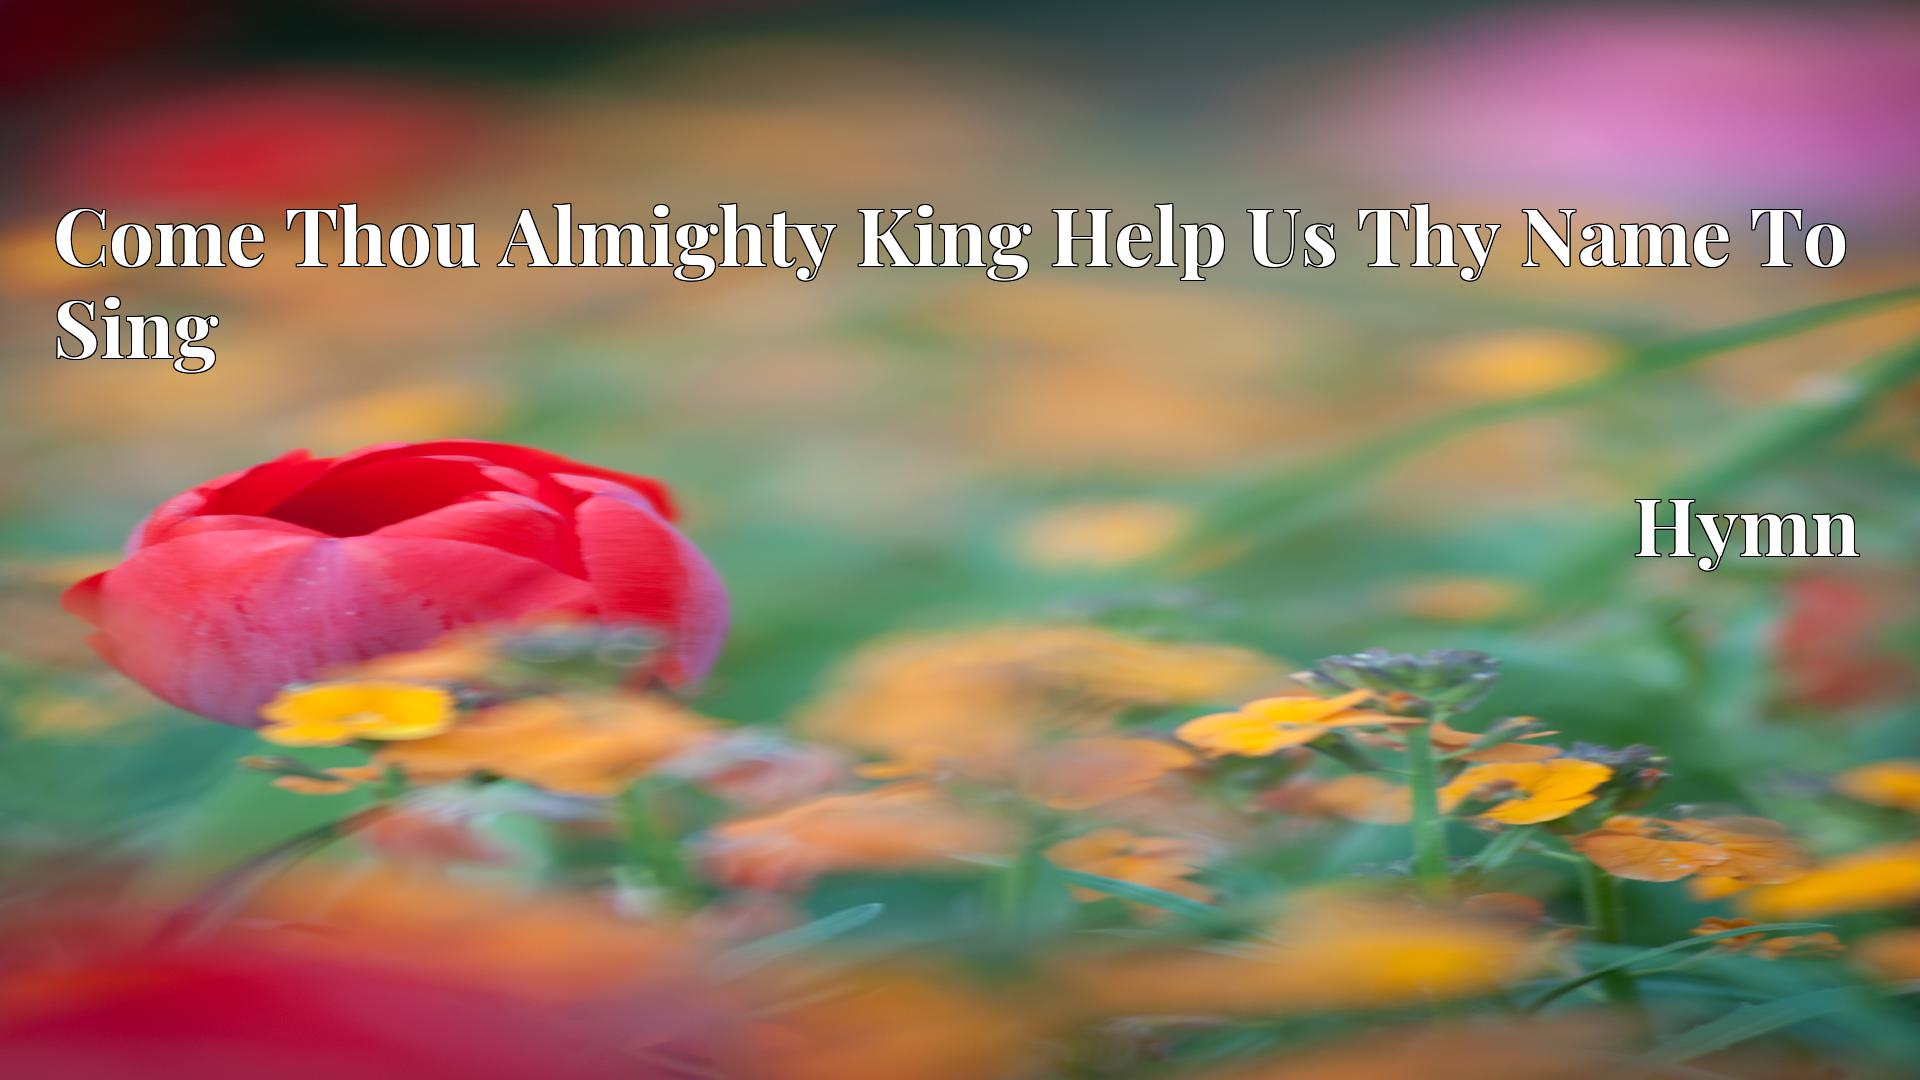 Come Thou Almighty King Help Us Thy Name To Sing - Hymn